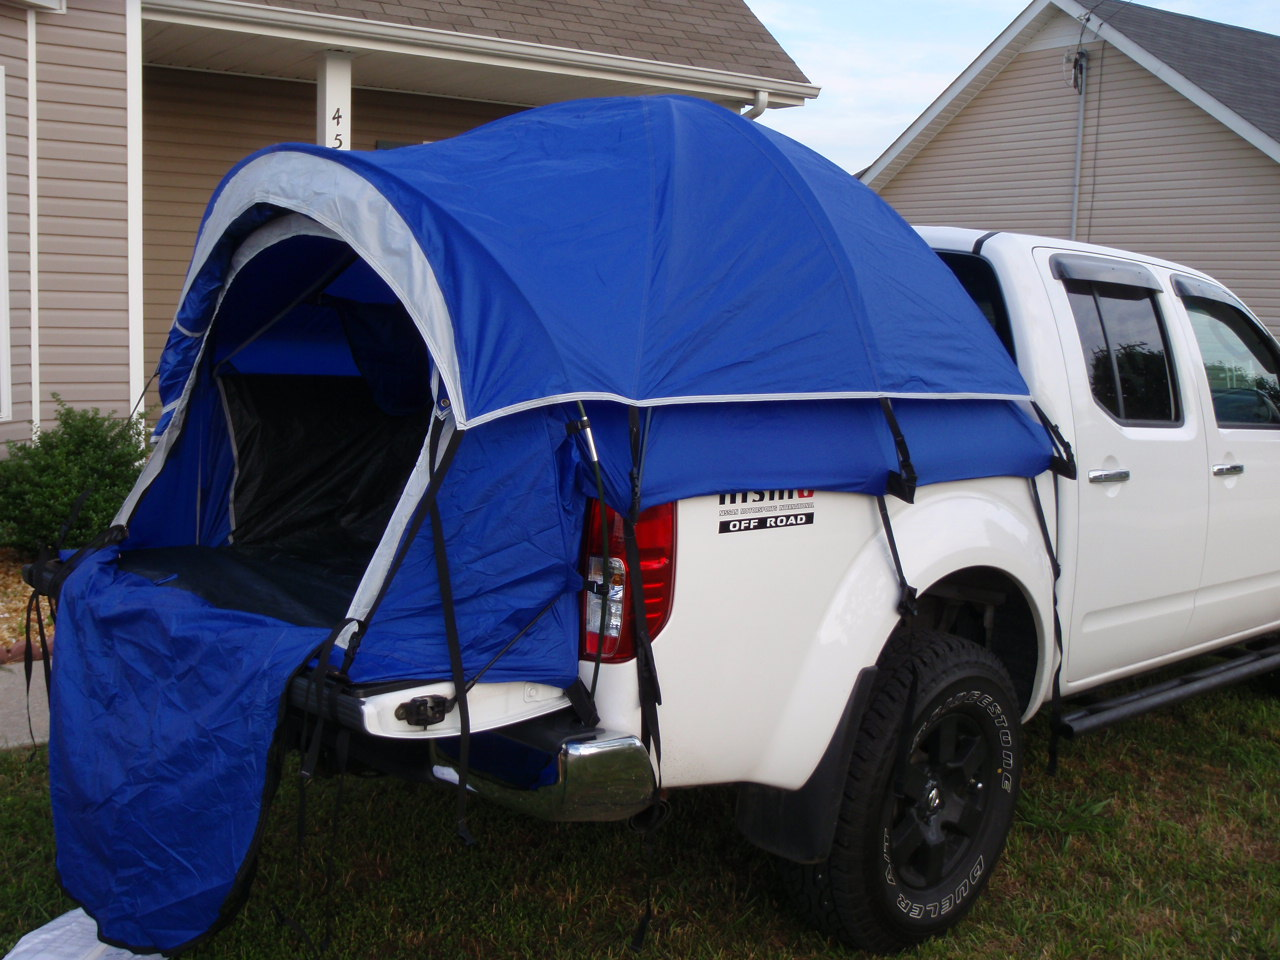 CC Nissan Bed Tent-p7100095.jpg & CC Nissan Bed Tent - Nissan Frontier Forum